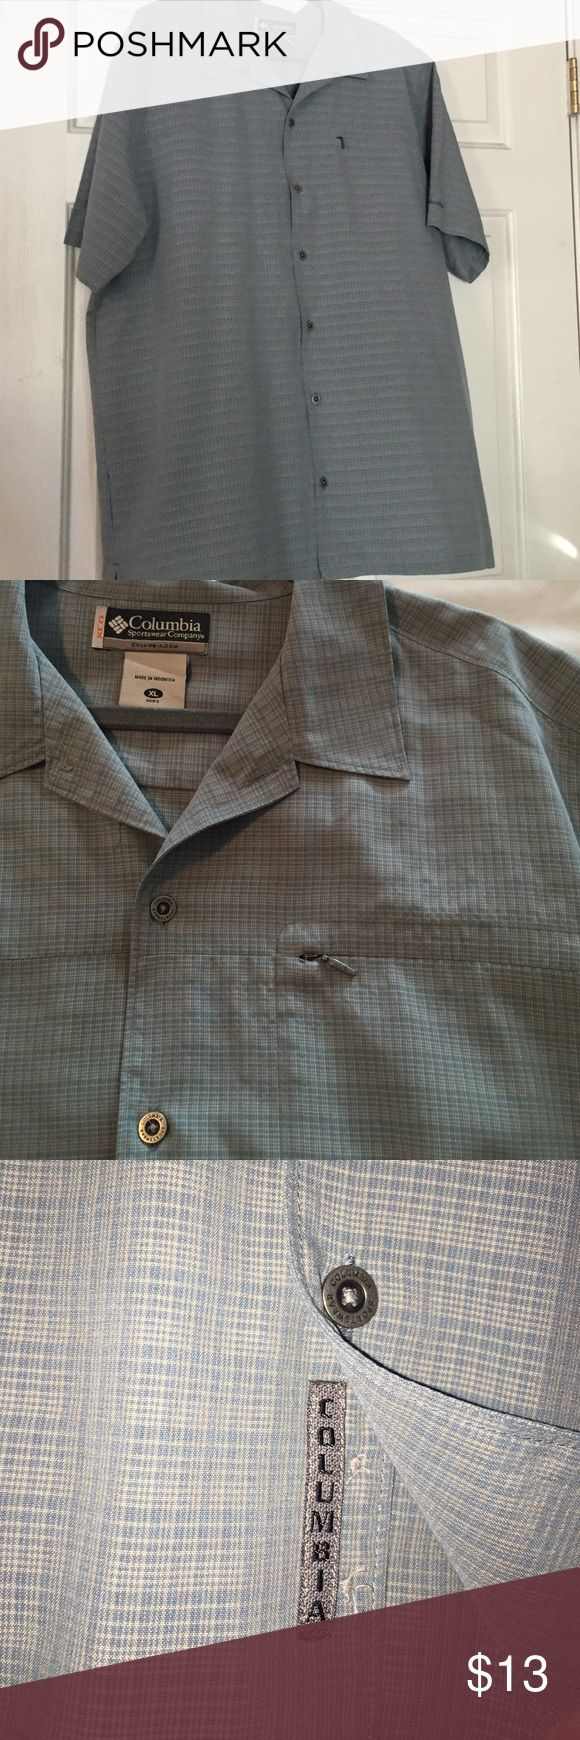 Columbia sportswear Men's buttoned short sleeve Columbia sportswear company size Xl, perfect condition, only worn once, zip pocket left side. Columbia Shirts Polos